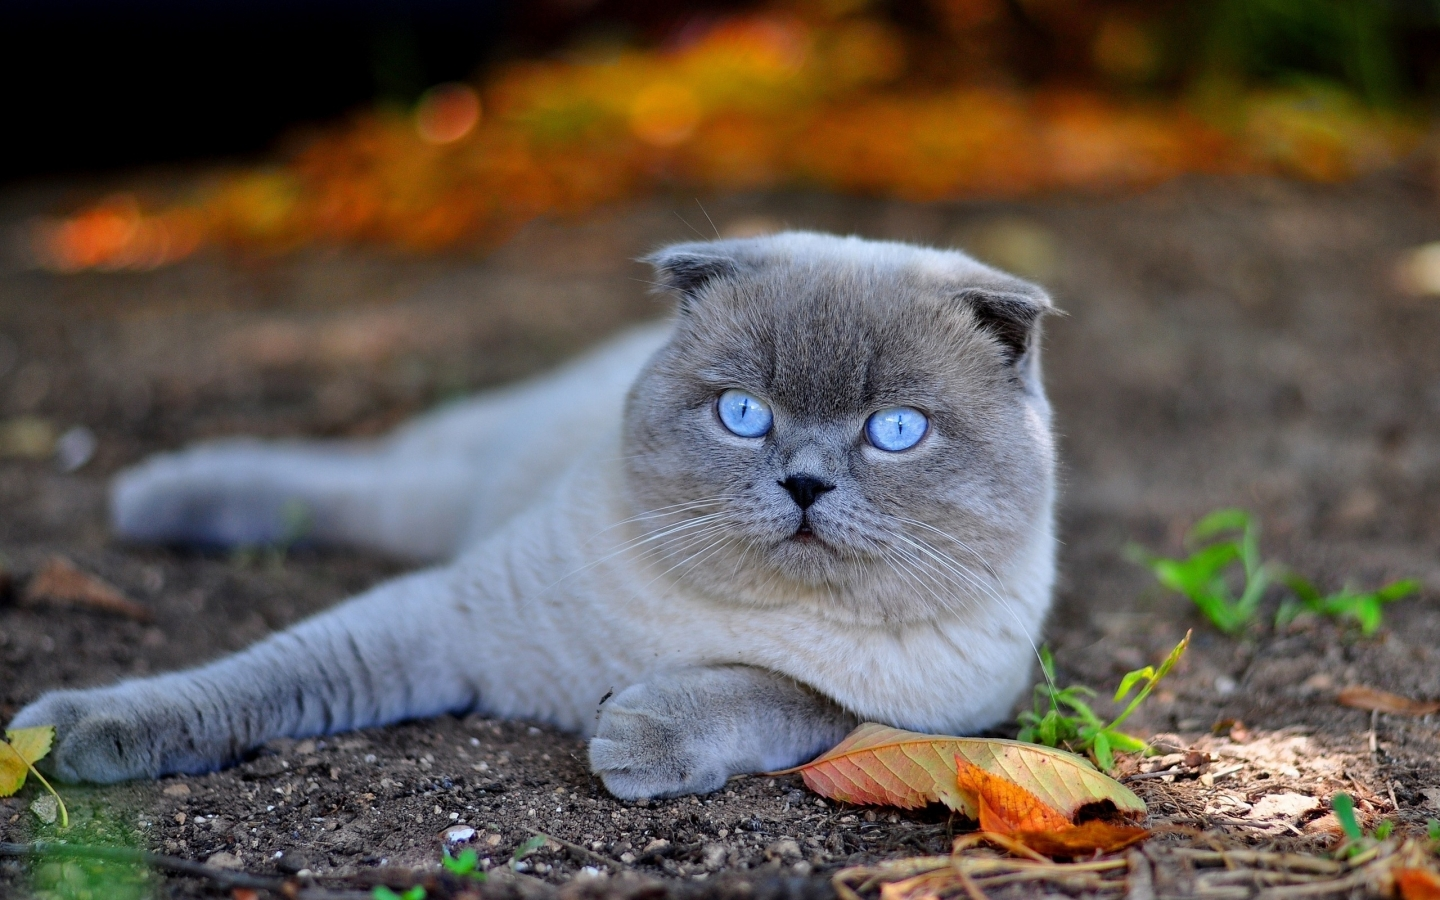 Scottish Fold Cat in Nature for 1440 x 900 widescreen resolution